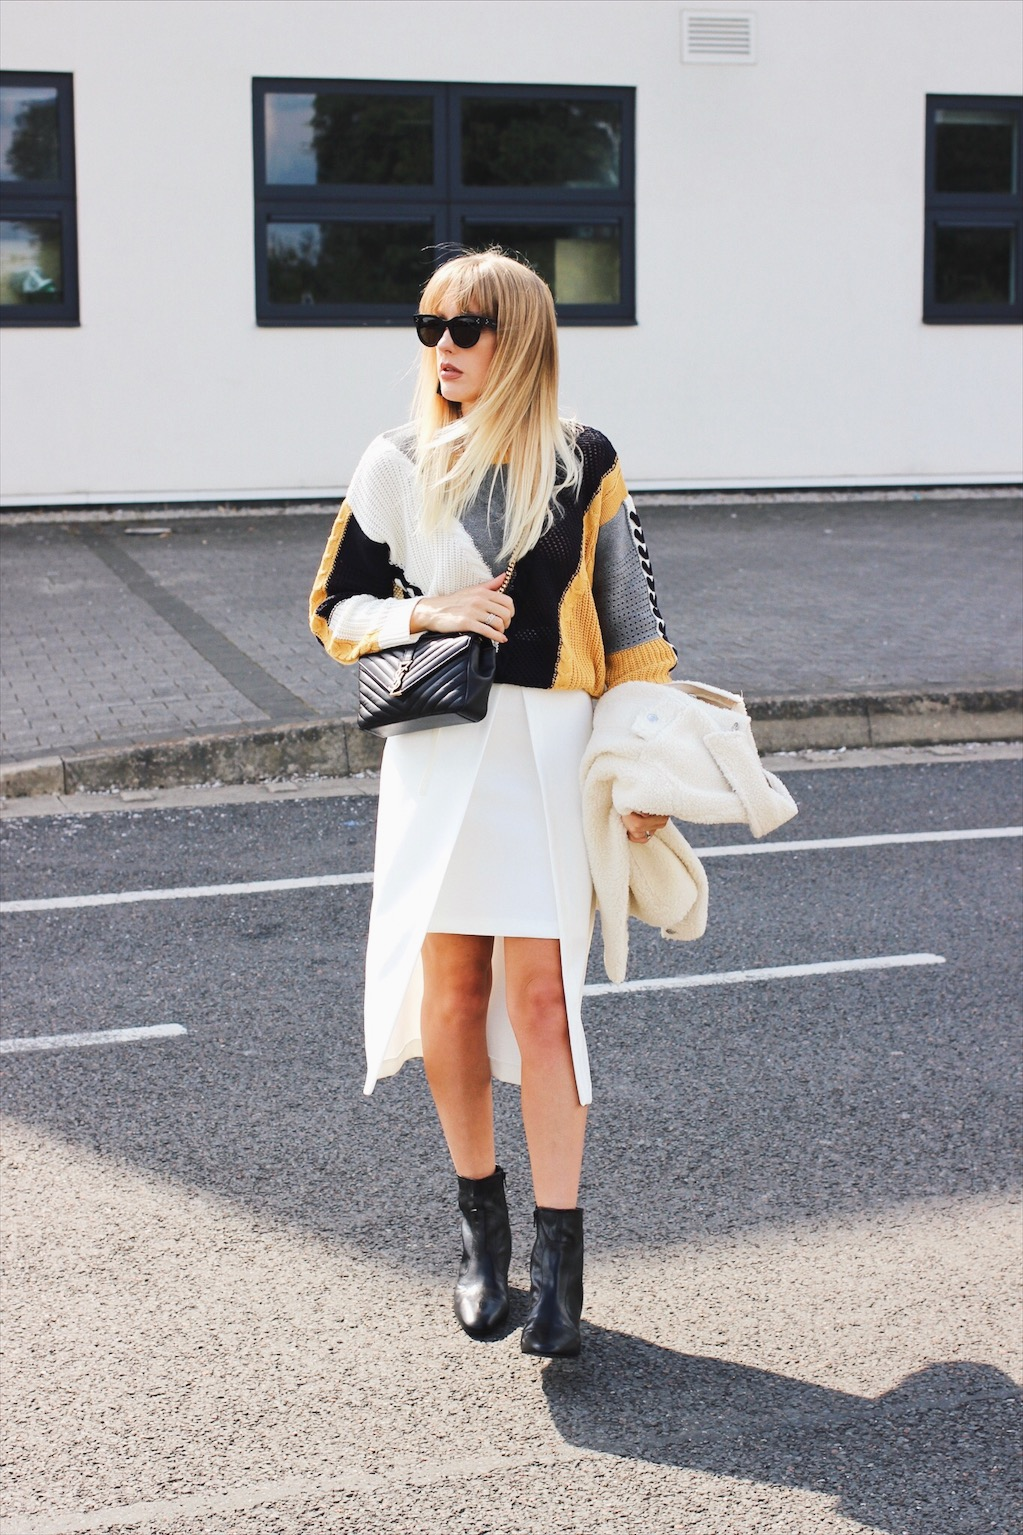 Style blogger Charlotte Buttrick from UK high street fashion blog